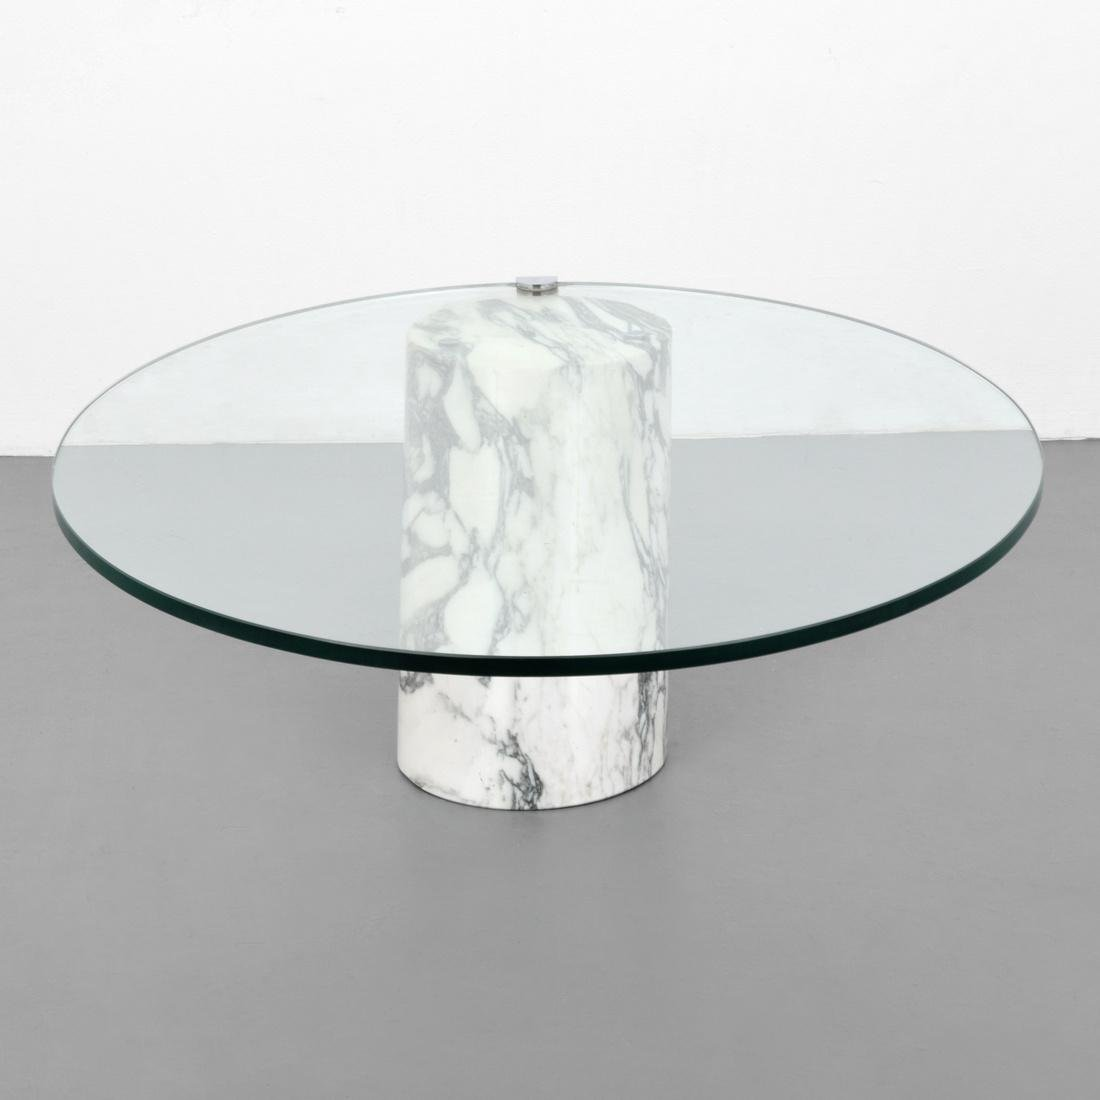 Brueton Cantilevered Coffee Table - 2